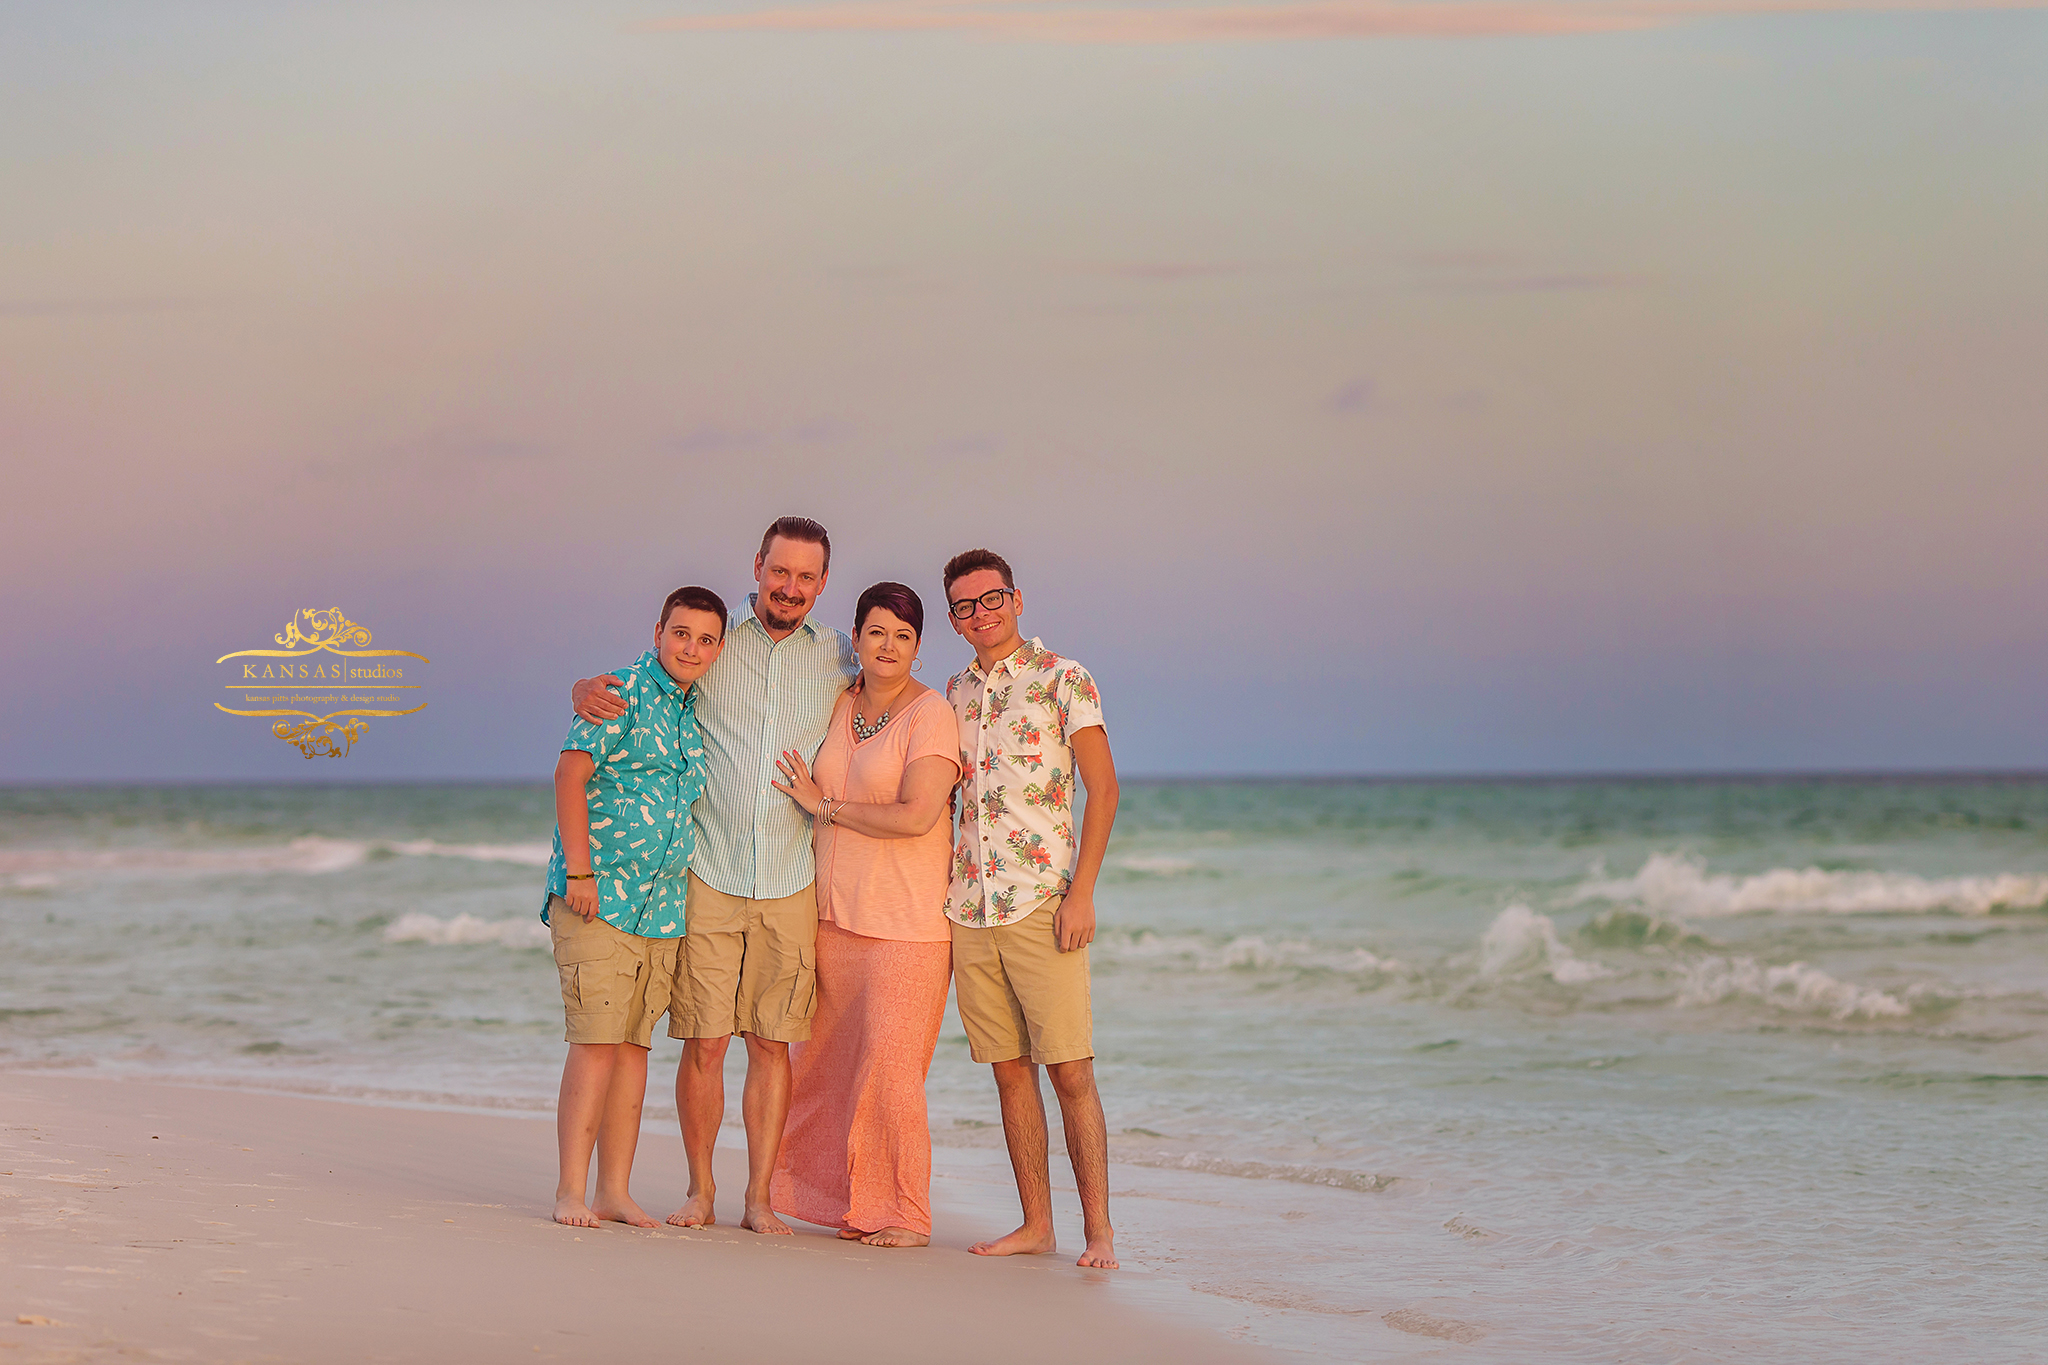 seagrove senior personals I senior pastor, gully springs meth  has lived in seagrove beach  1150 personals ments include all perti- ined at the following loca- florida,.